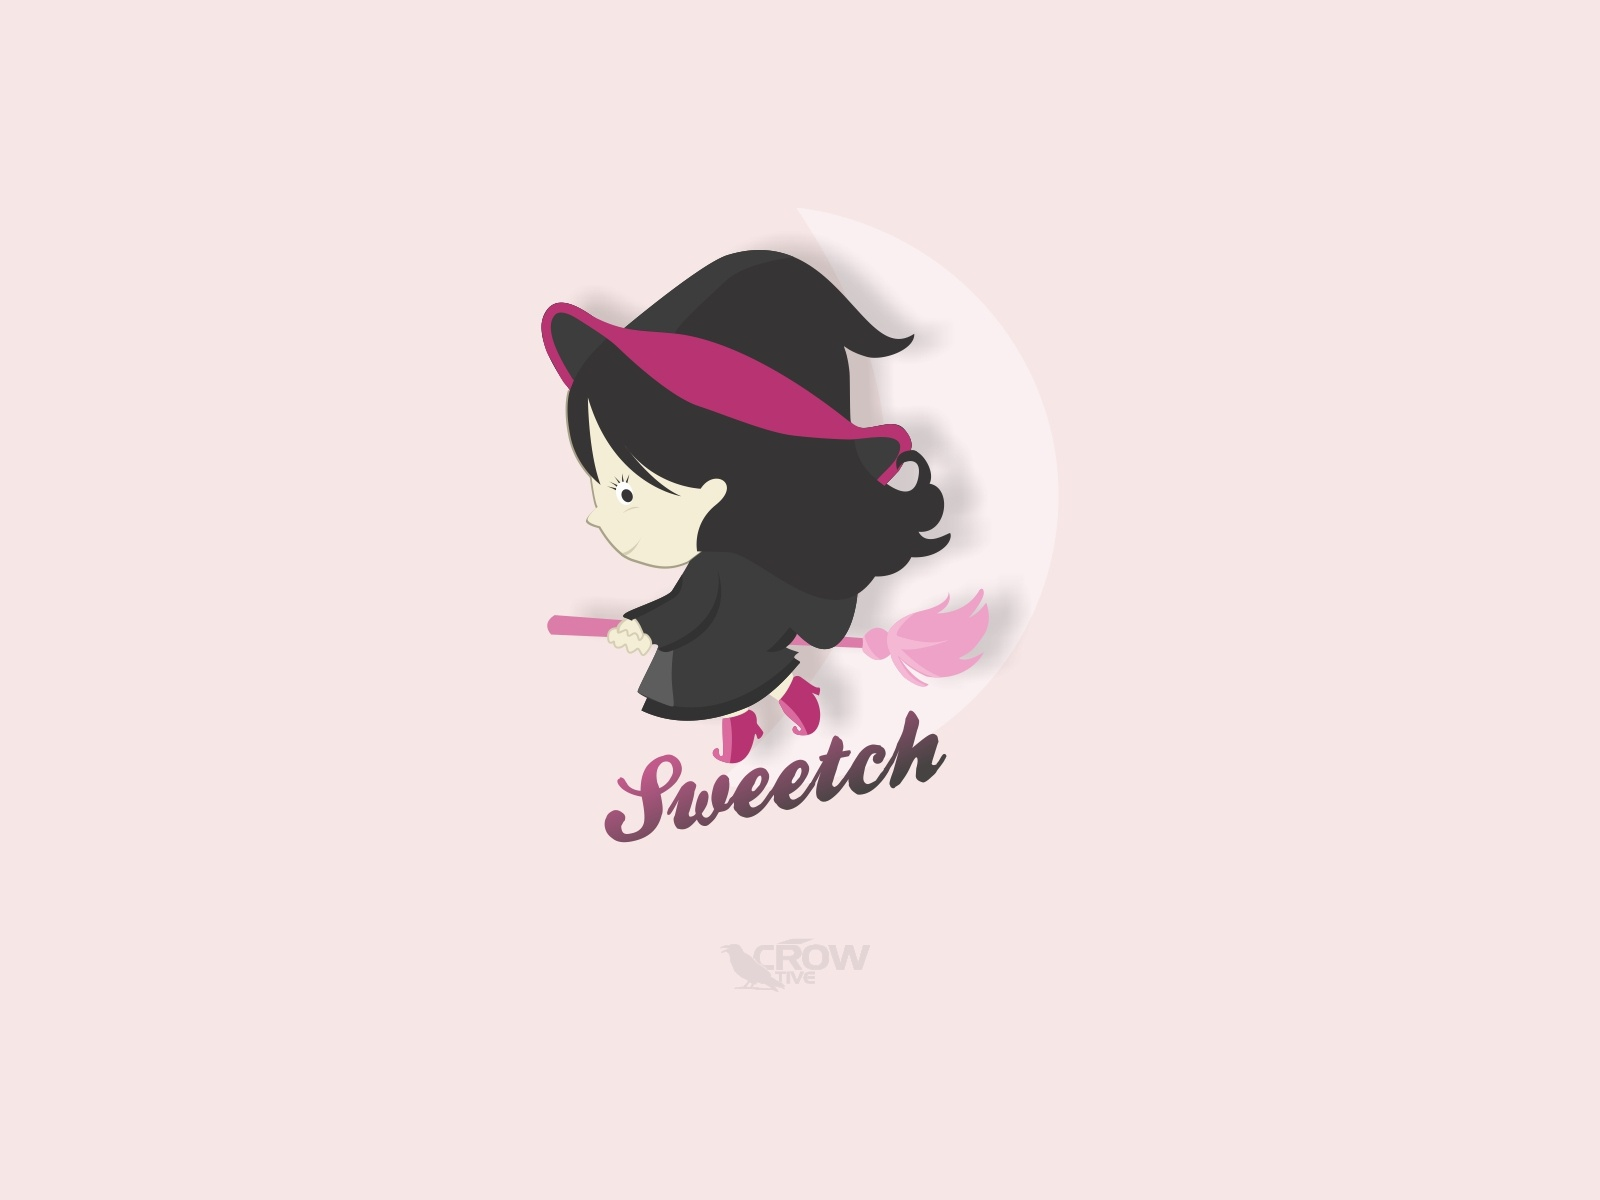 Sweet Witch Logo by Muhammad Rifqi on Dribbble.